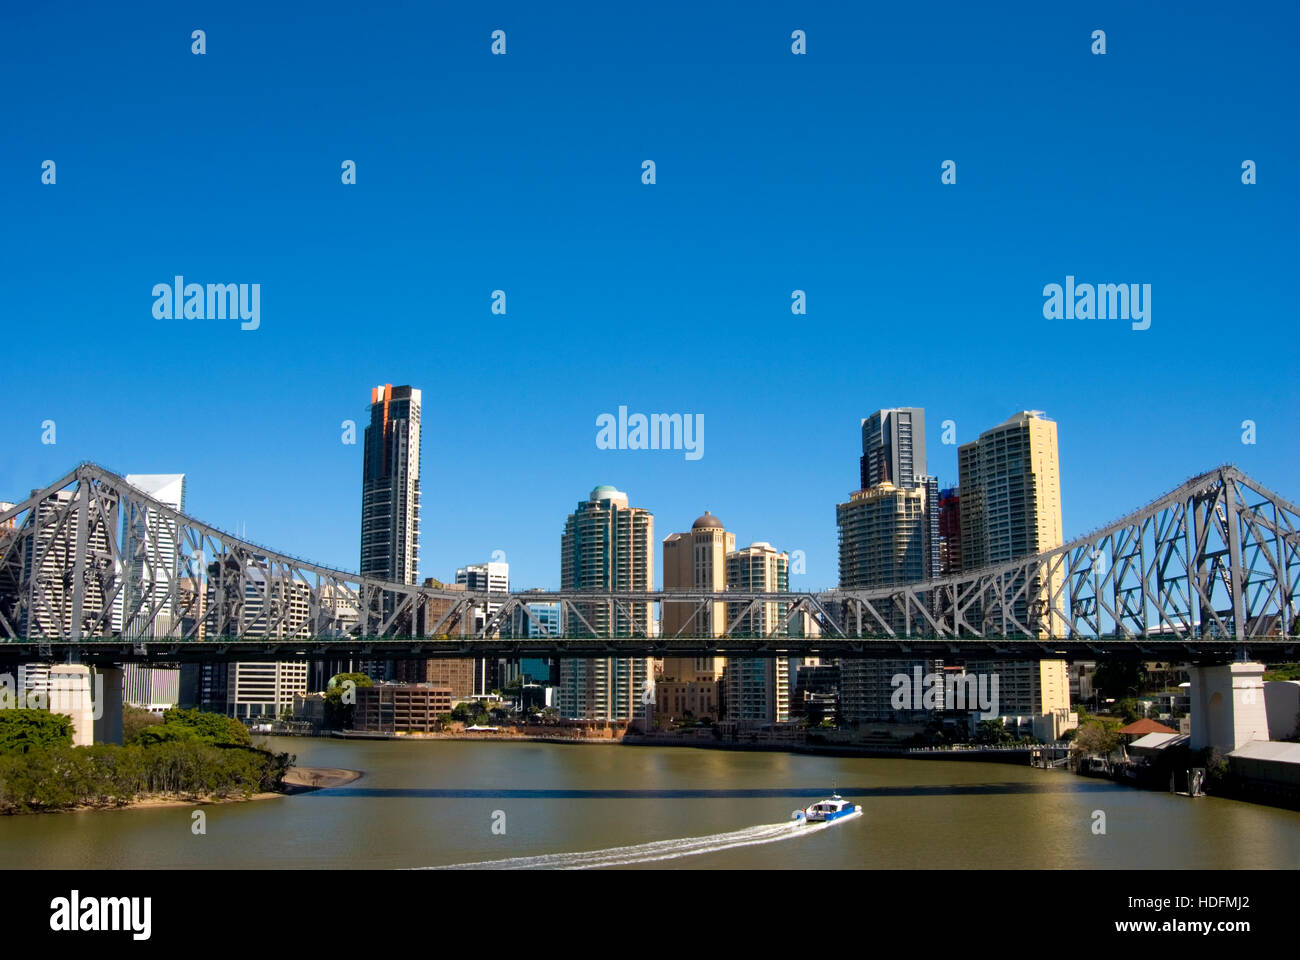 Brisbane City Australia showing the Storey Bridge. - Stock Image